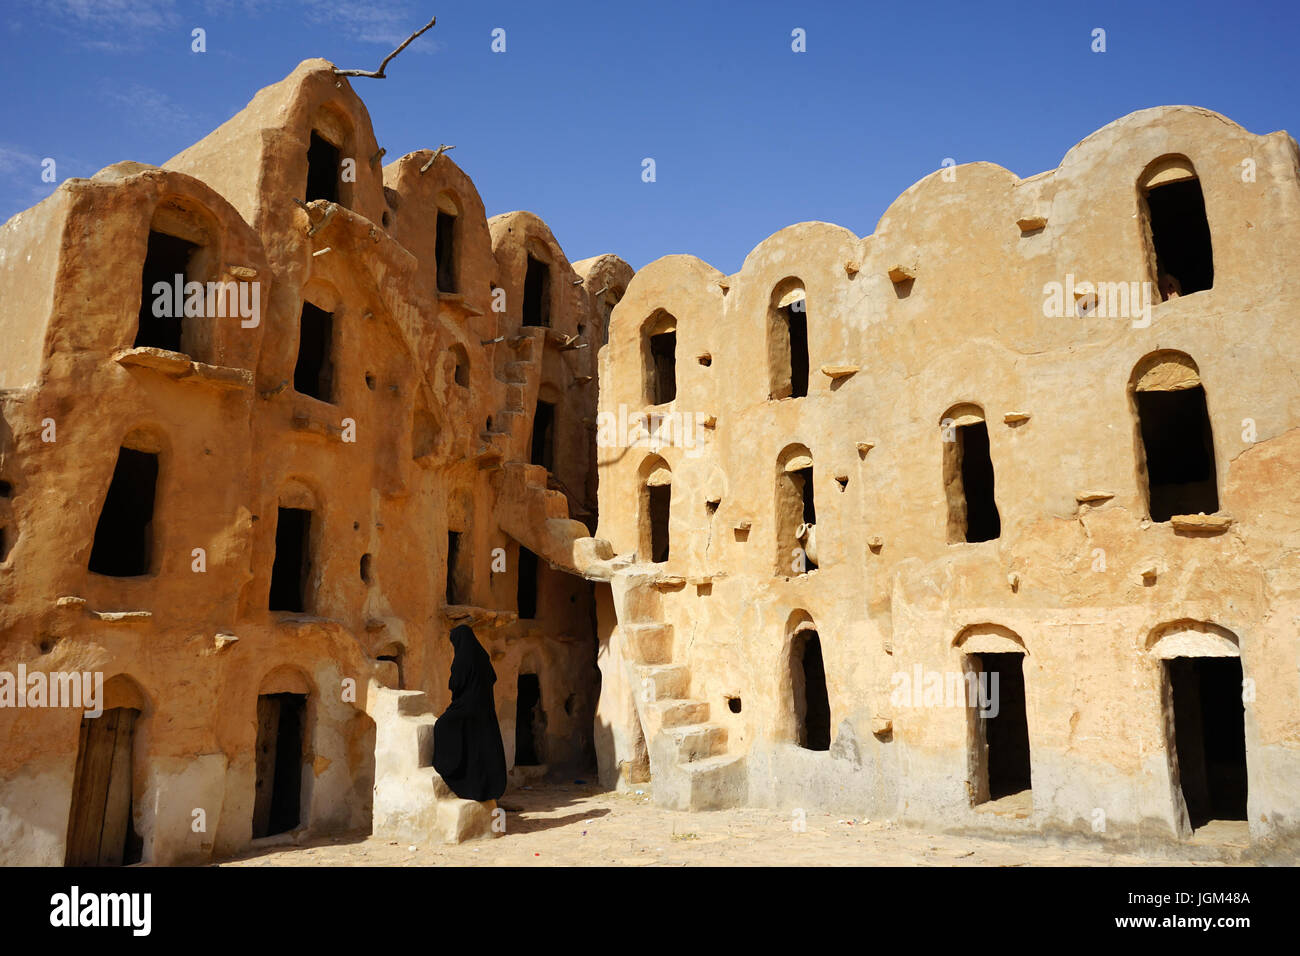 Ksar Ouled Soltane, an ancient fortified granary, or ksar, located in the Tataouine district in southern Tunisia Stock Photo